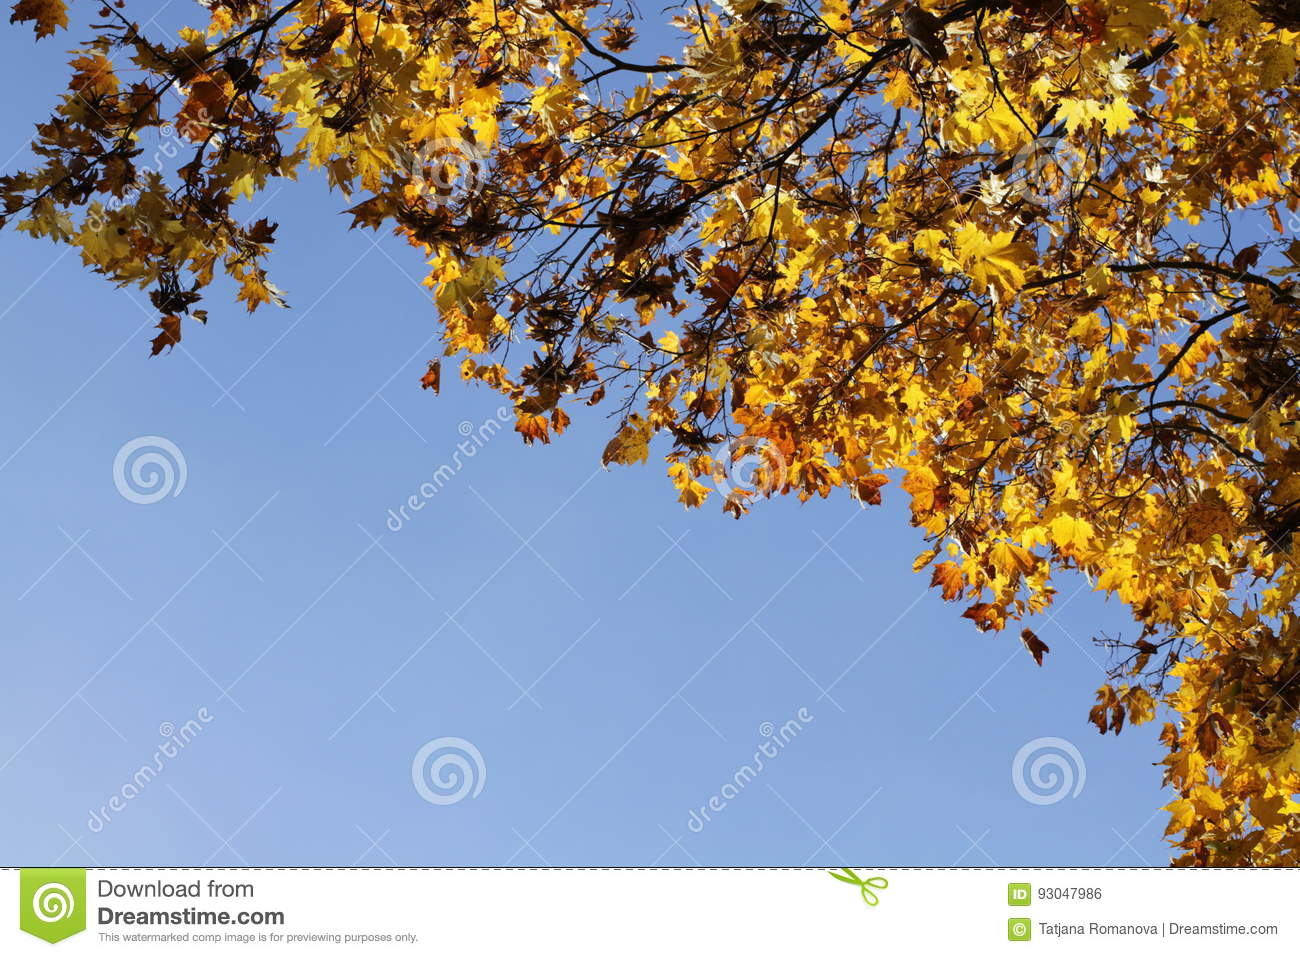 Autumn yellow leafs on blue sky